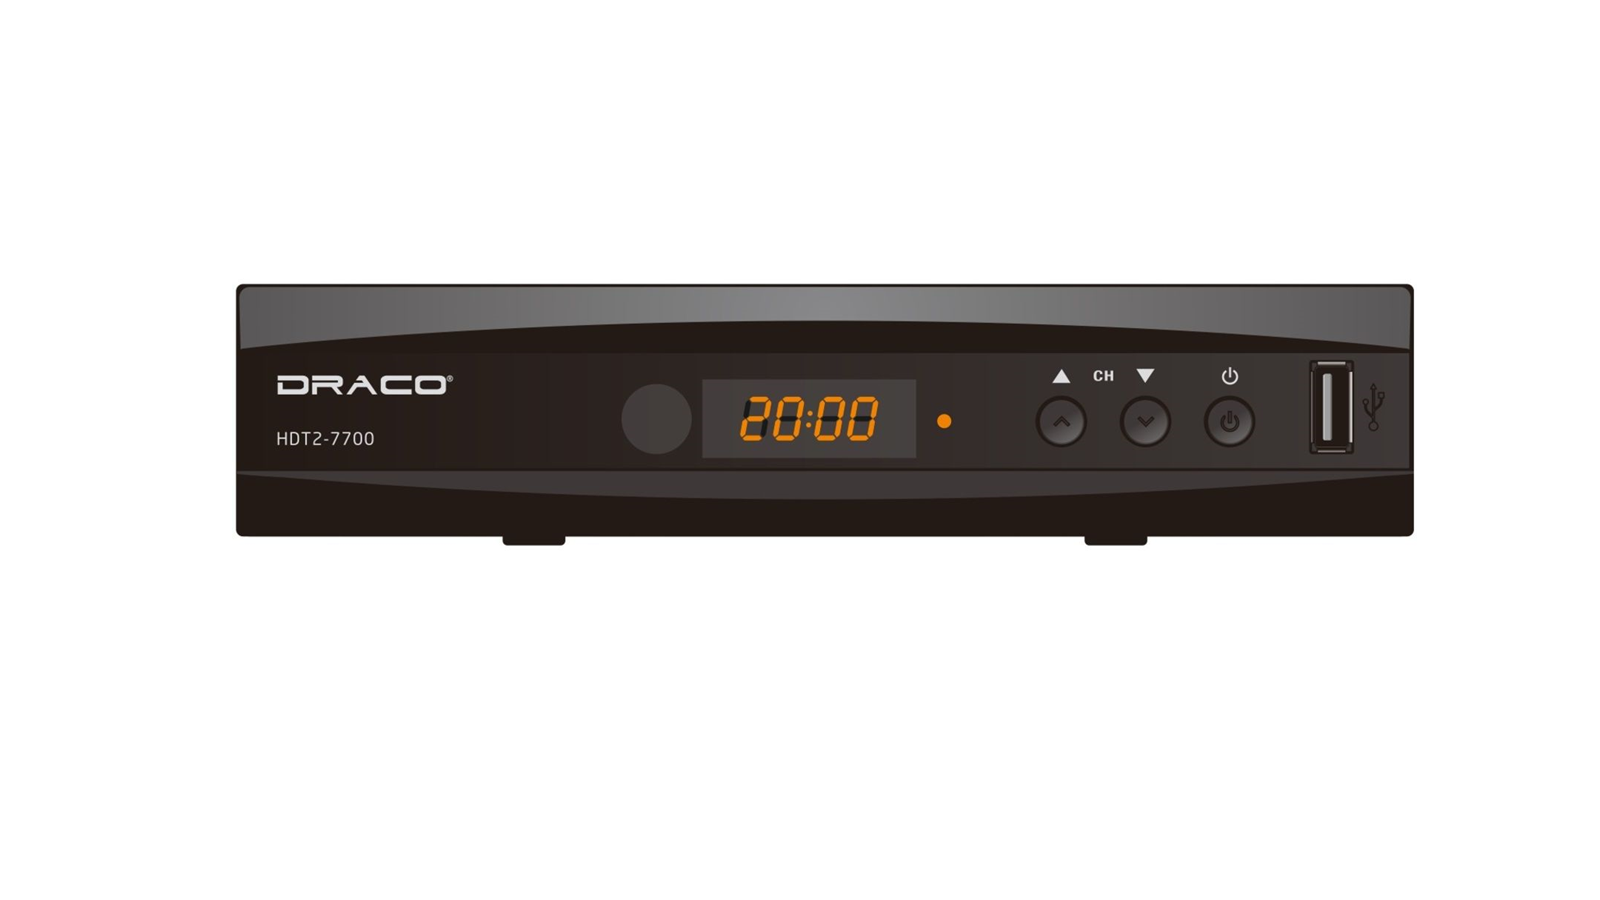 Draco W/ANT900 High Definition Digital TV Receiver